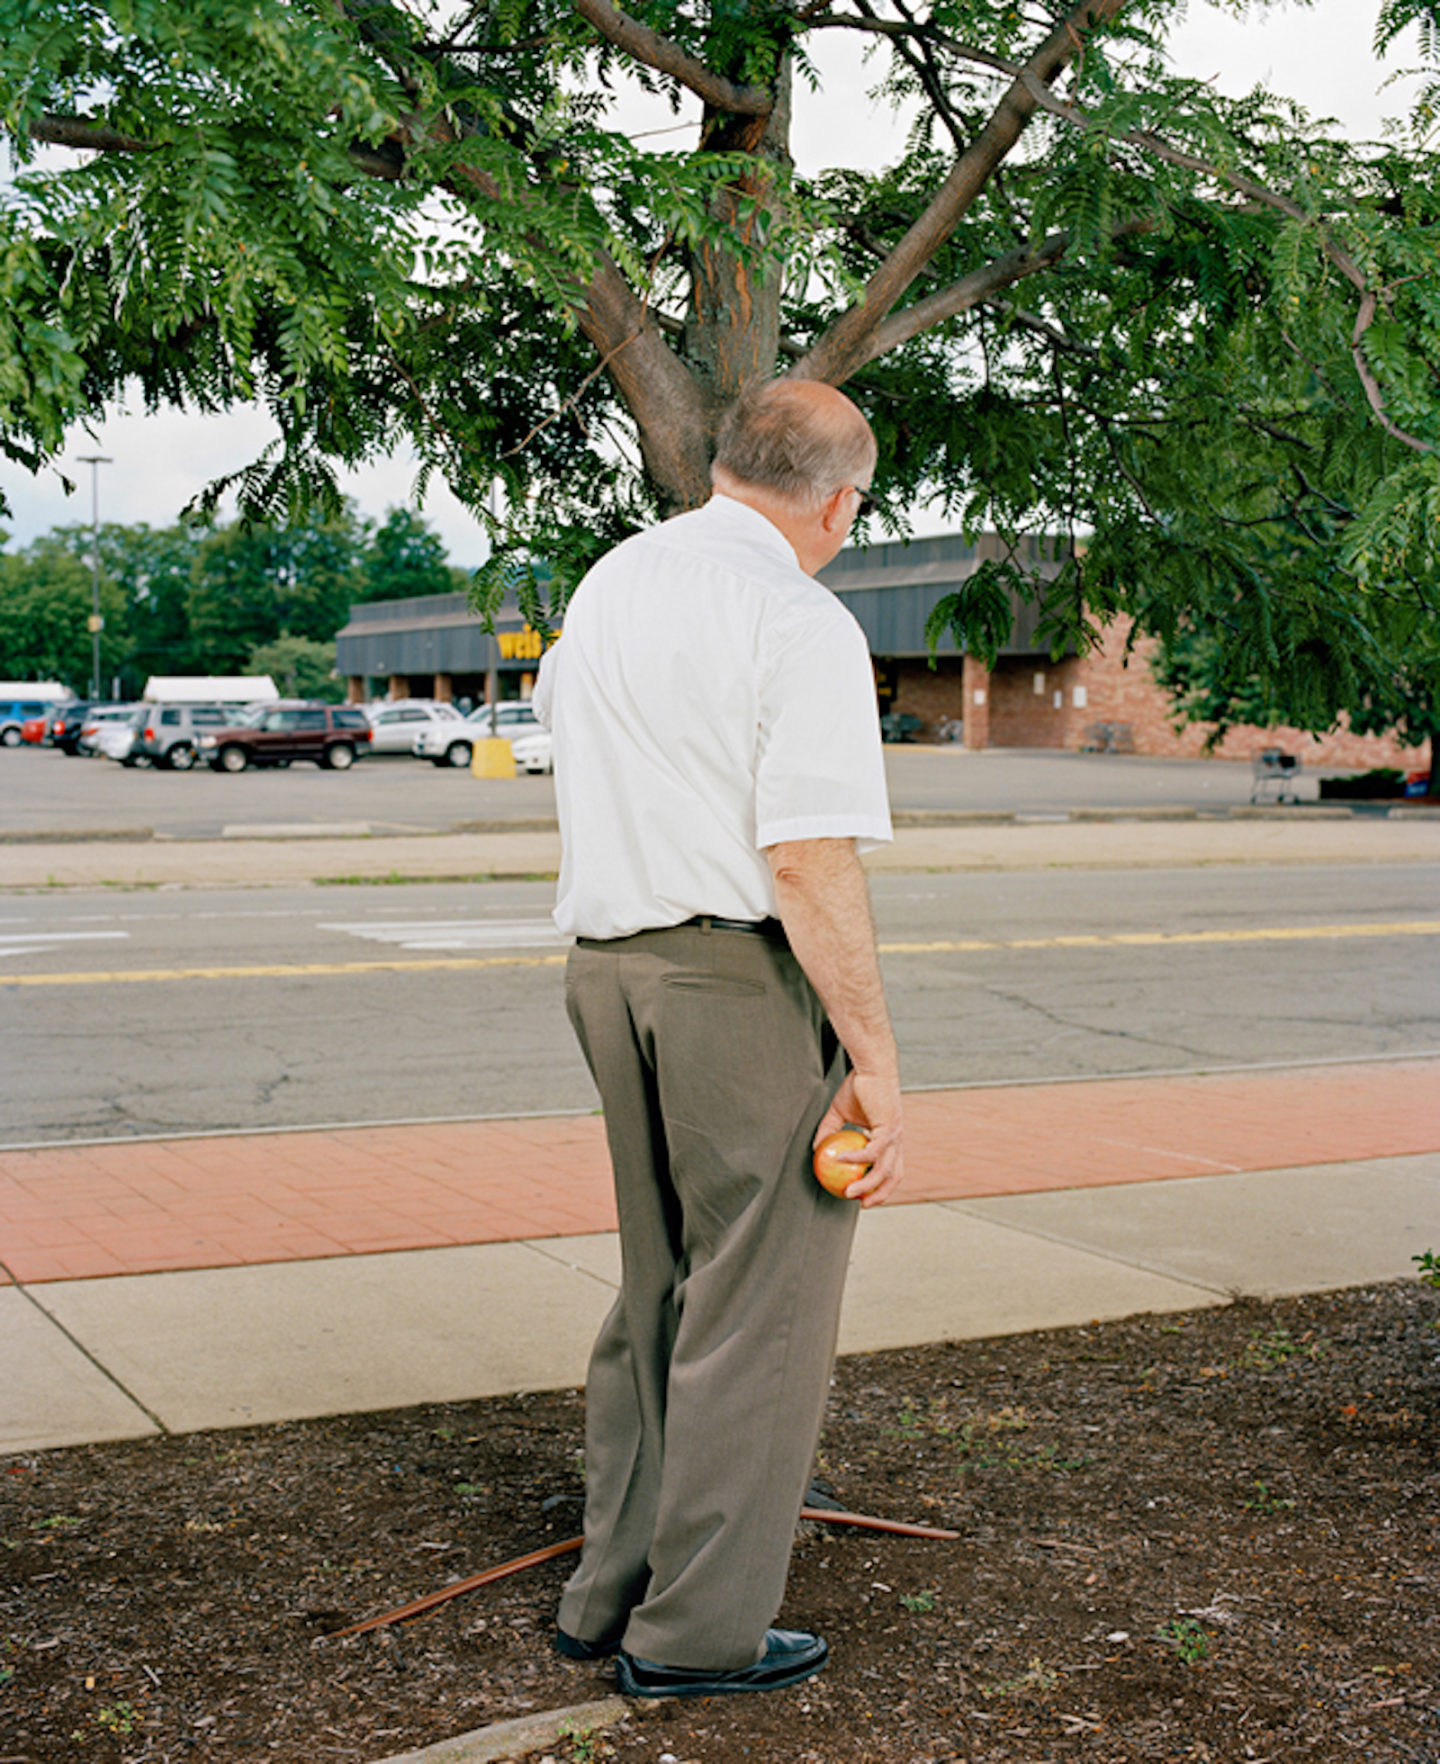 Margins Of Excess, l'America vista da Max Pinckers | Collater.al